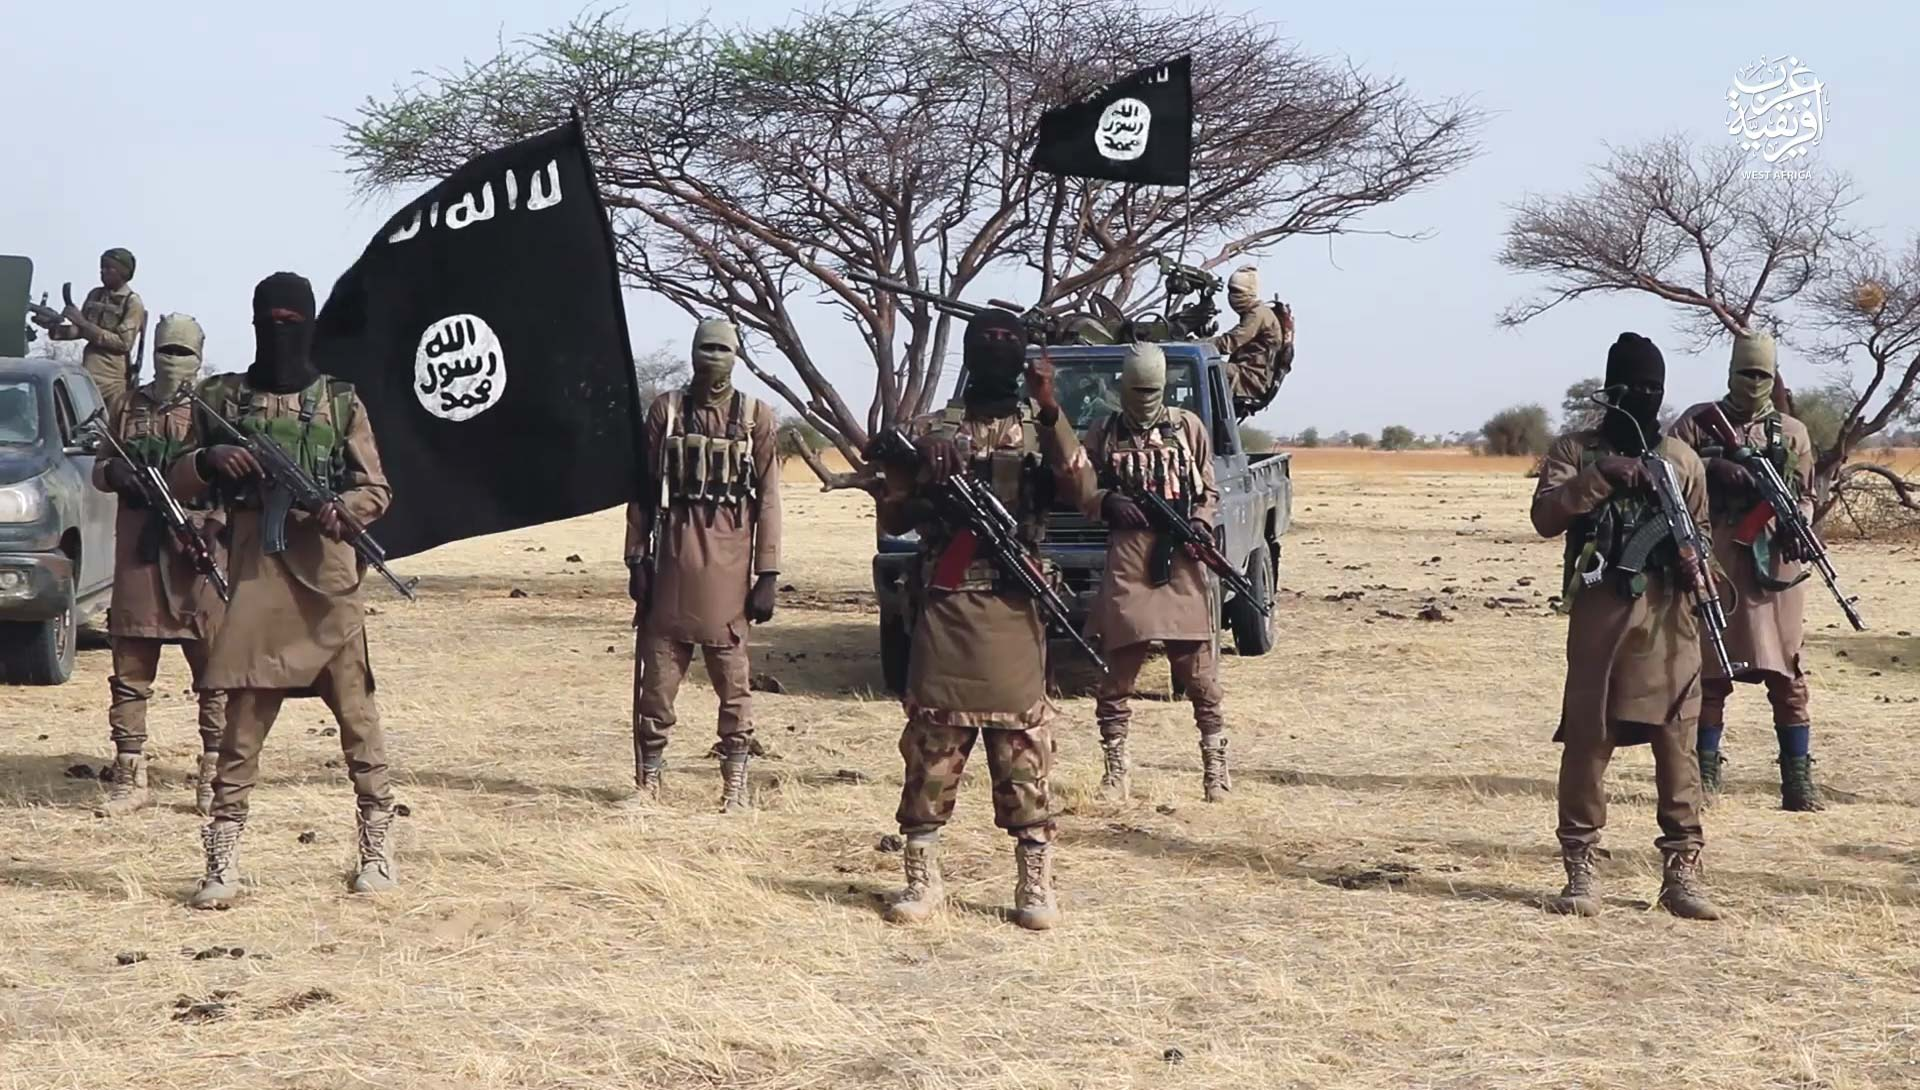 United Nations Aid Worker Abducted by Boko Haram, Borno Highway Attacked